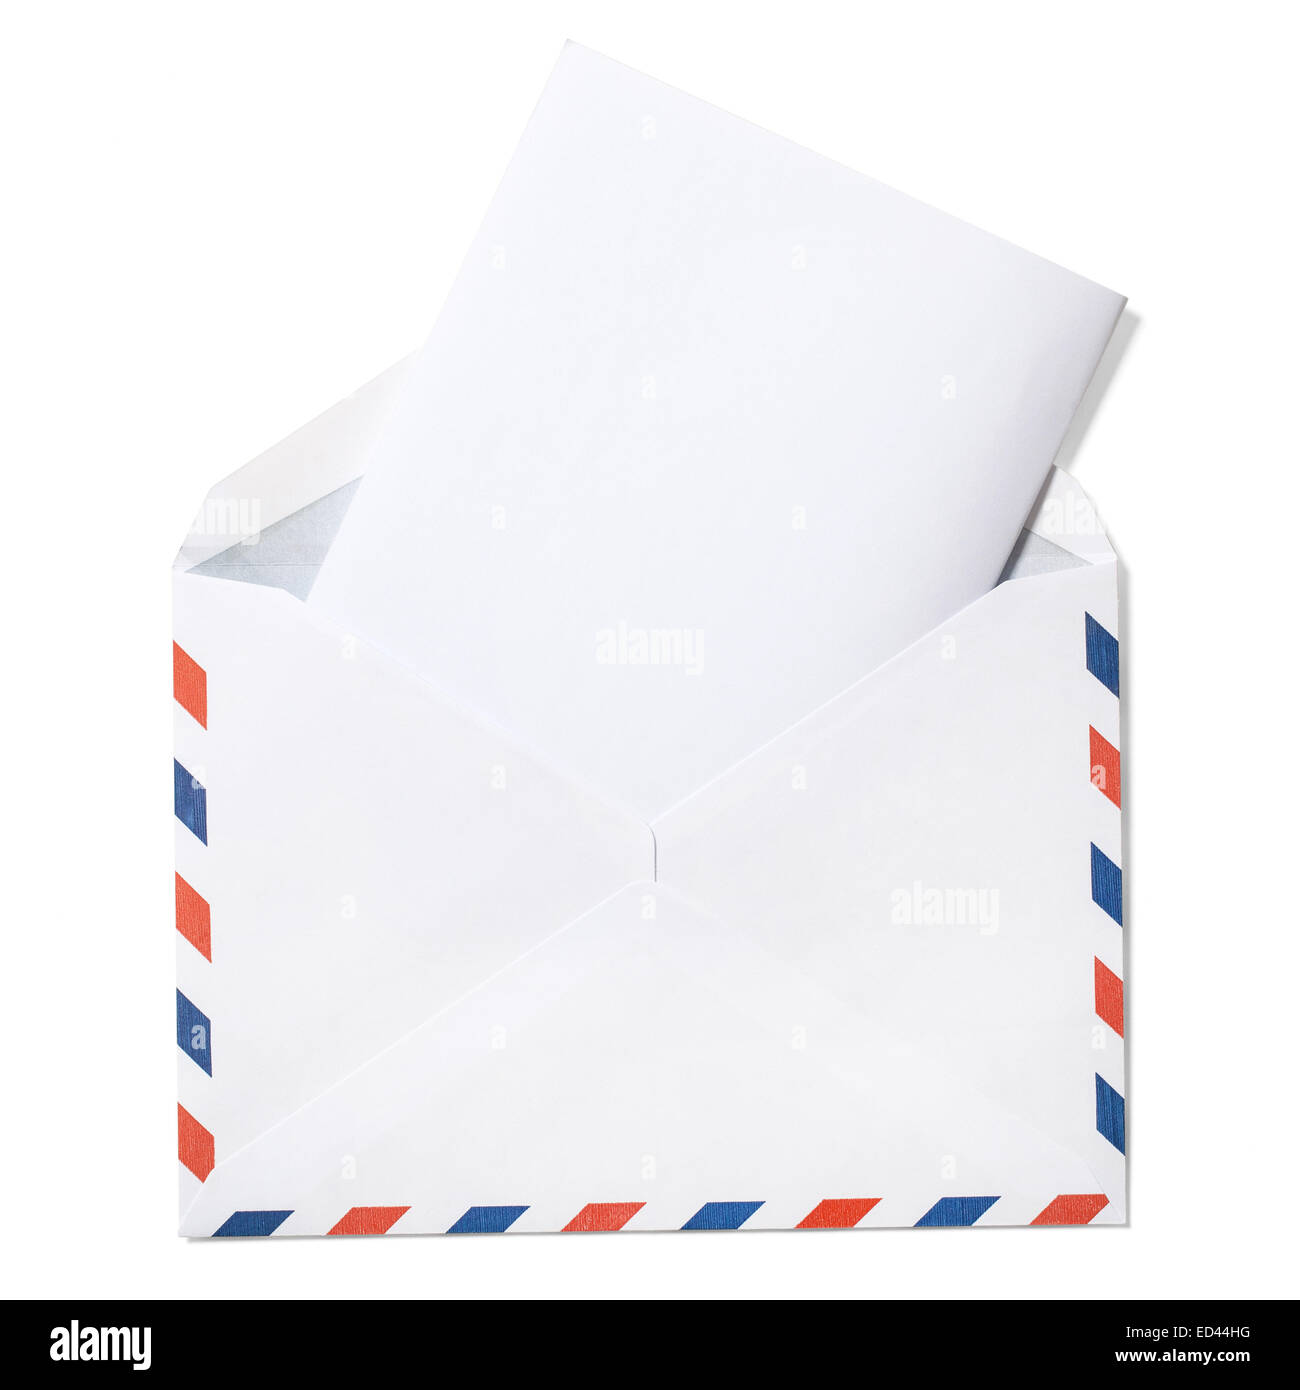 Envelope with folded letter and clipping path on white - Stock Image